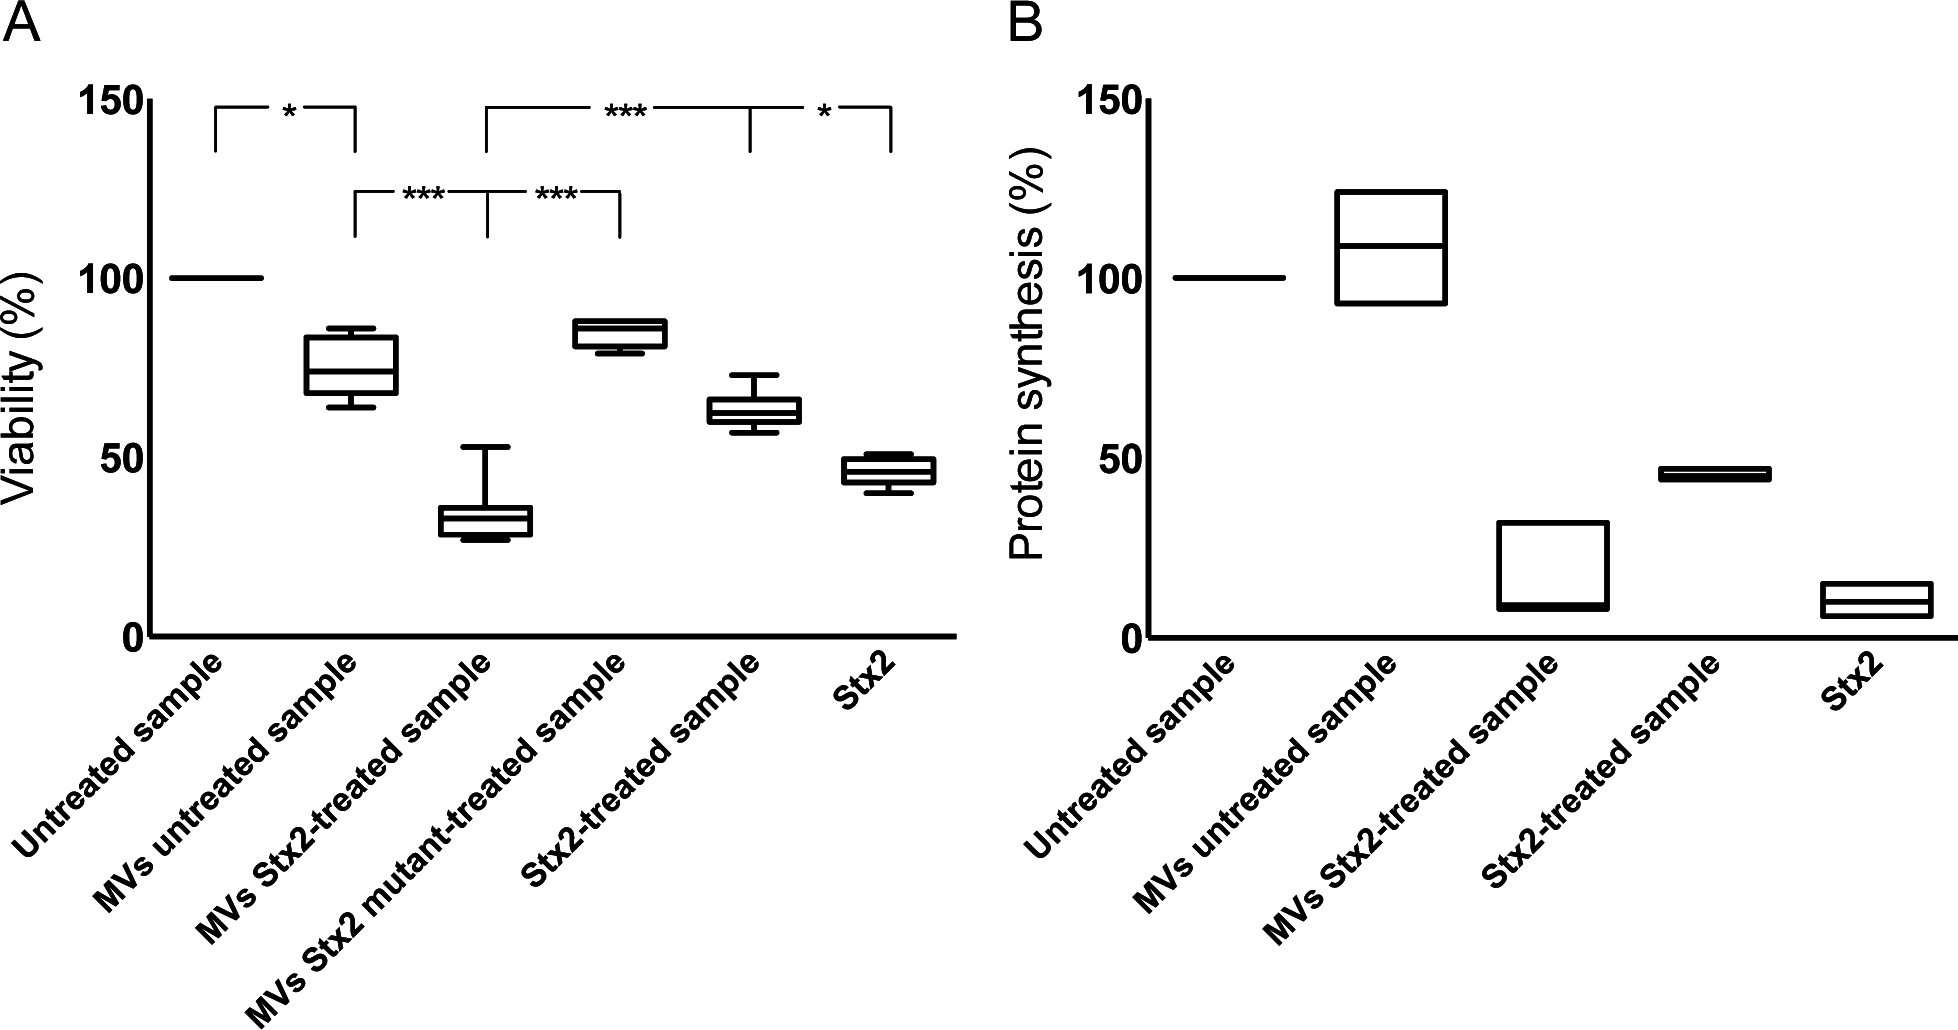 Microvesicles containing Stx2 affected the viability and inhibited protein synthesis in CiGEnC.